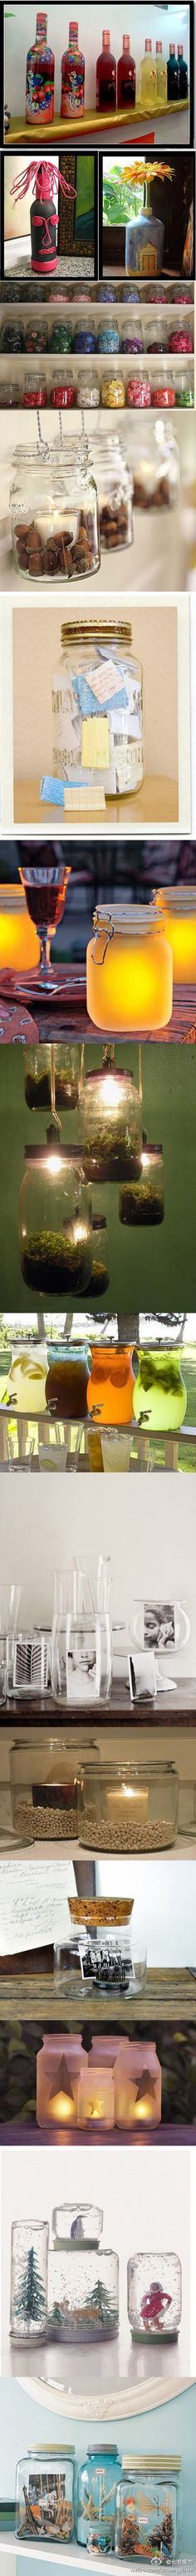 Jar decoration - absolutely love it!